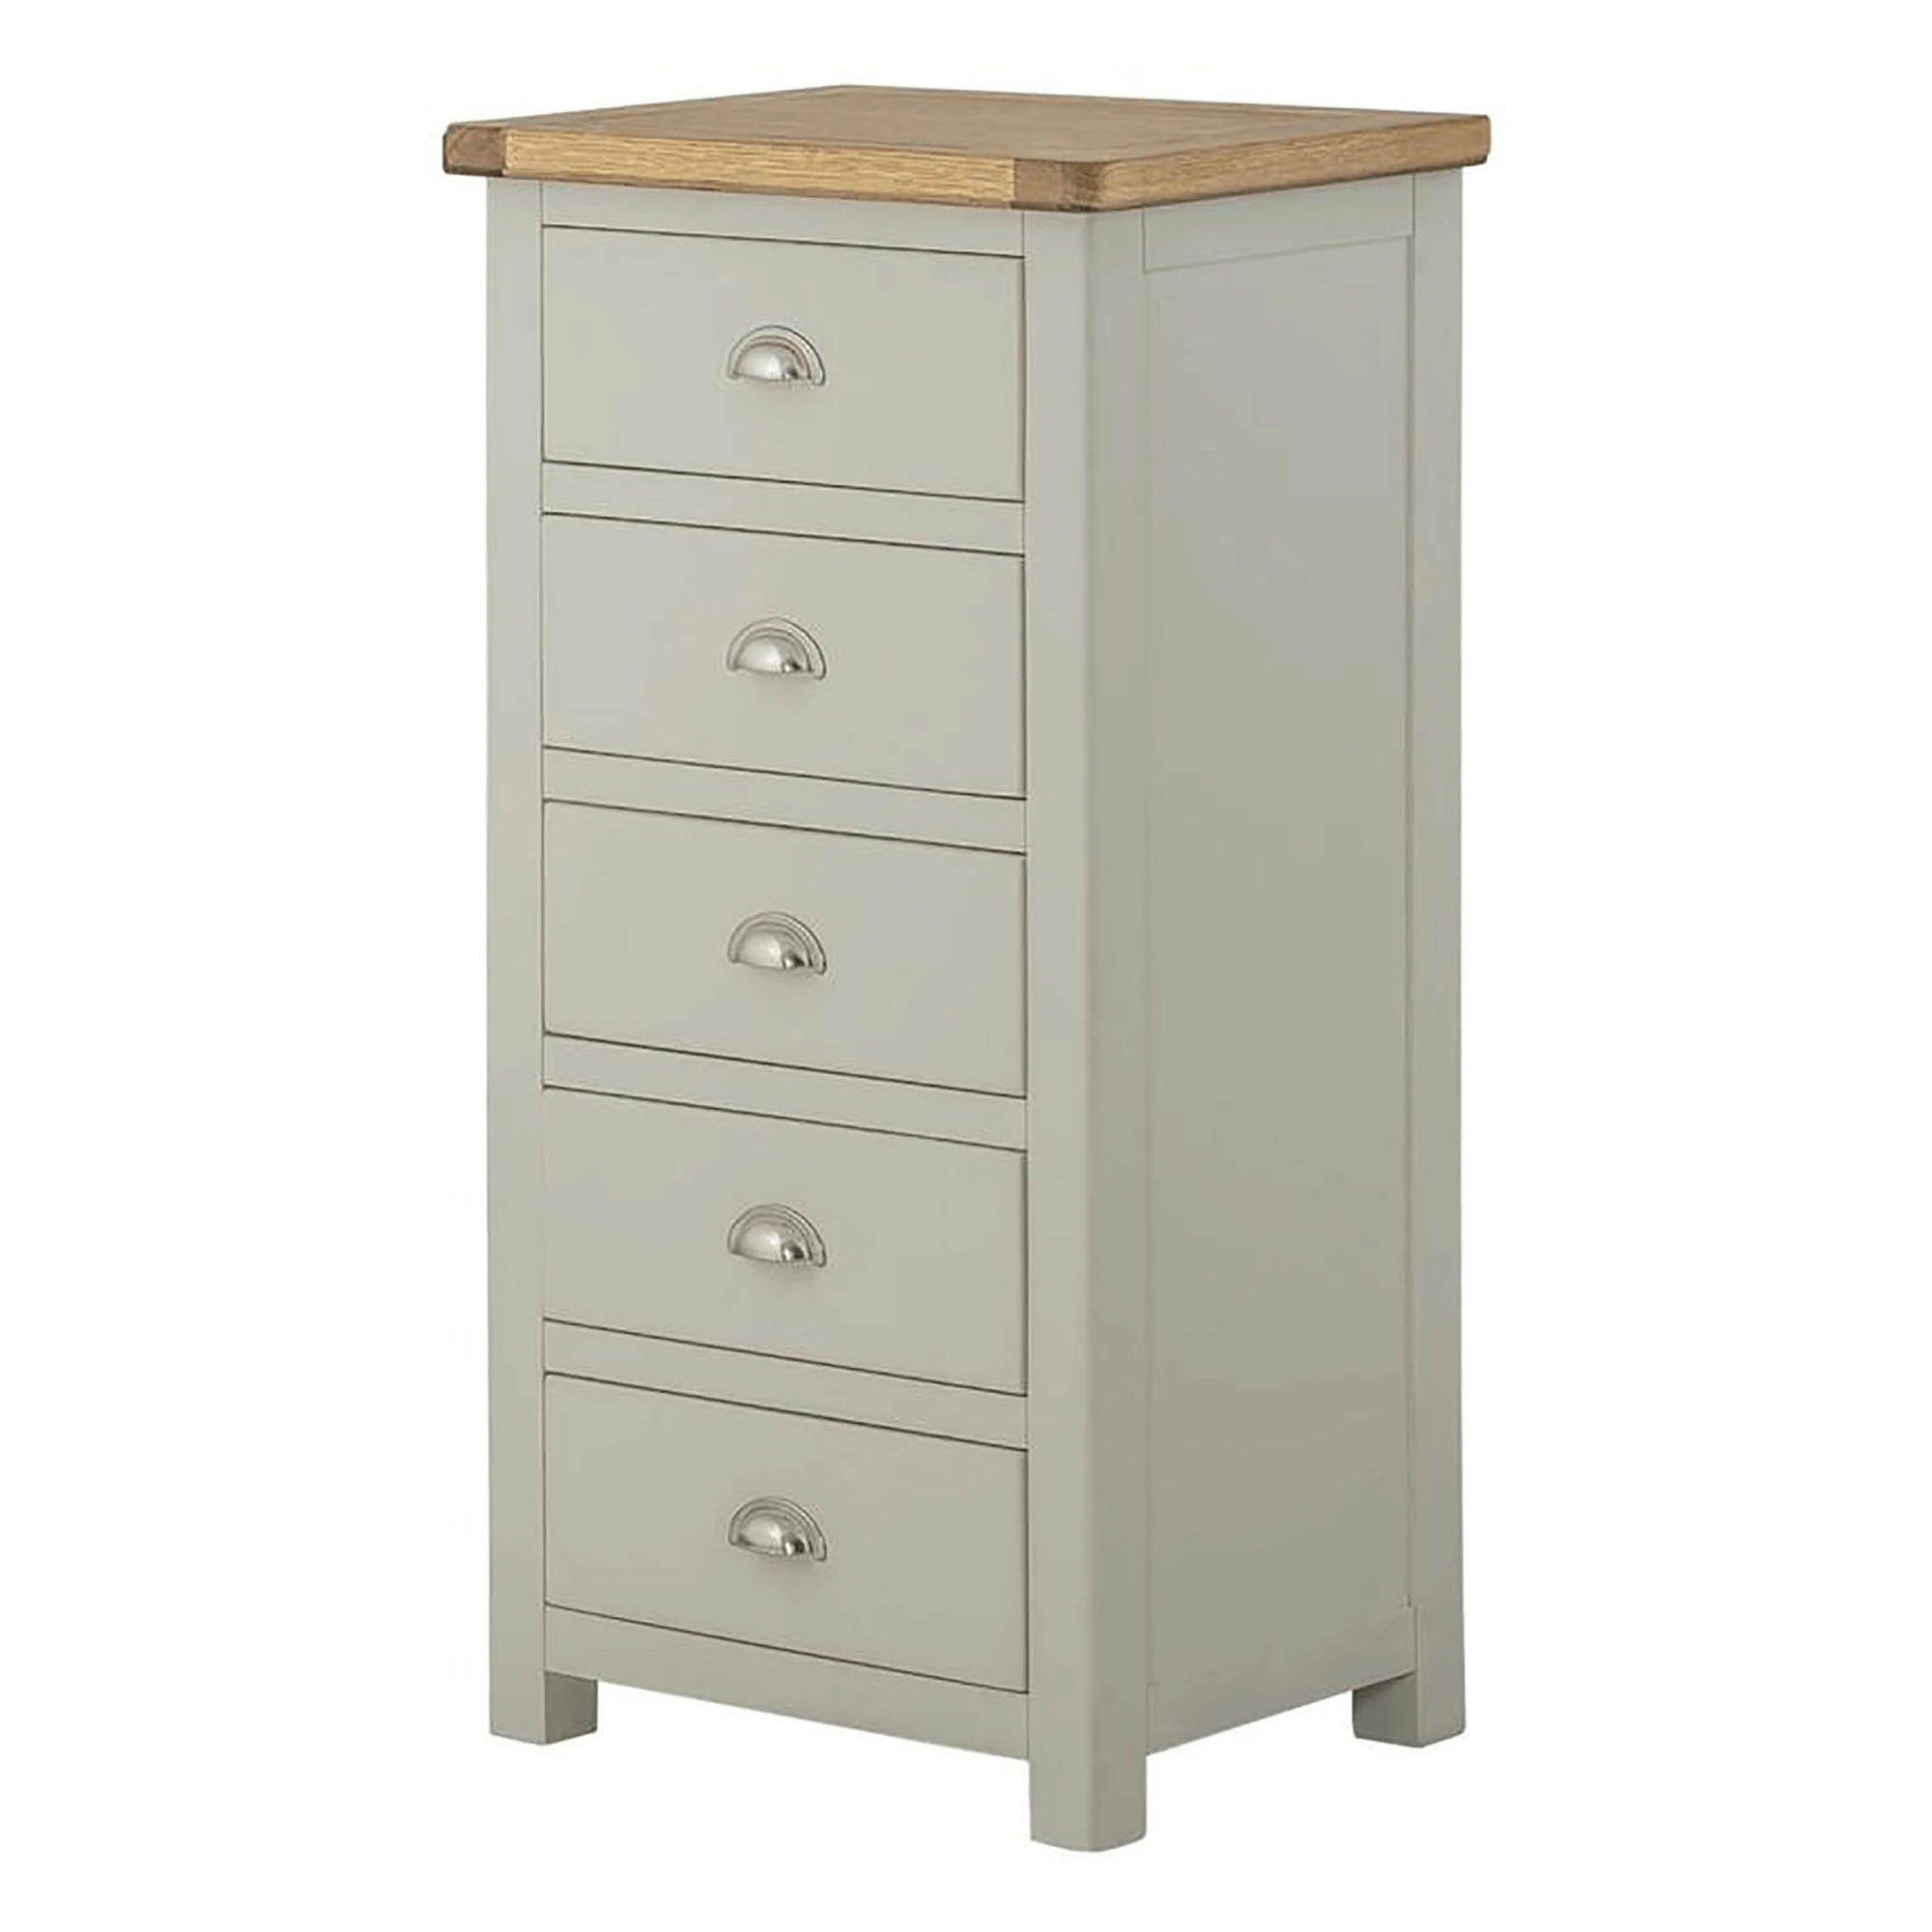 The Padstow Grey Tall Chest of Drawers from Roseland Furniture